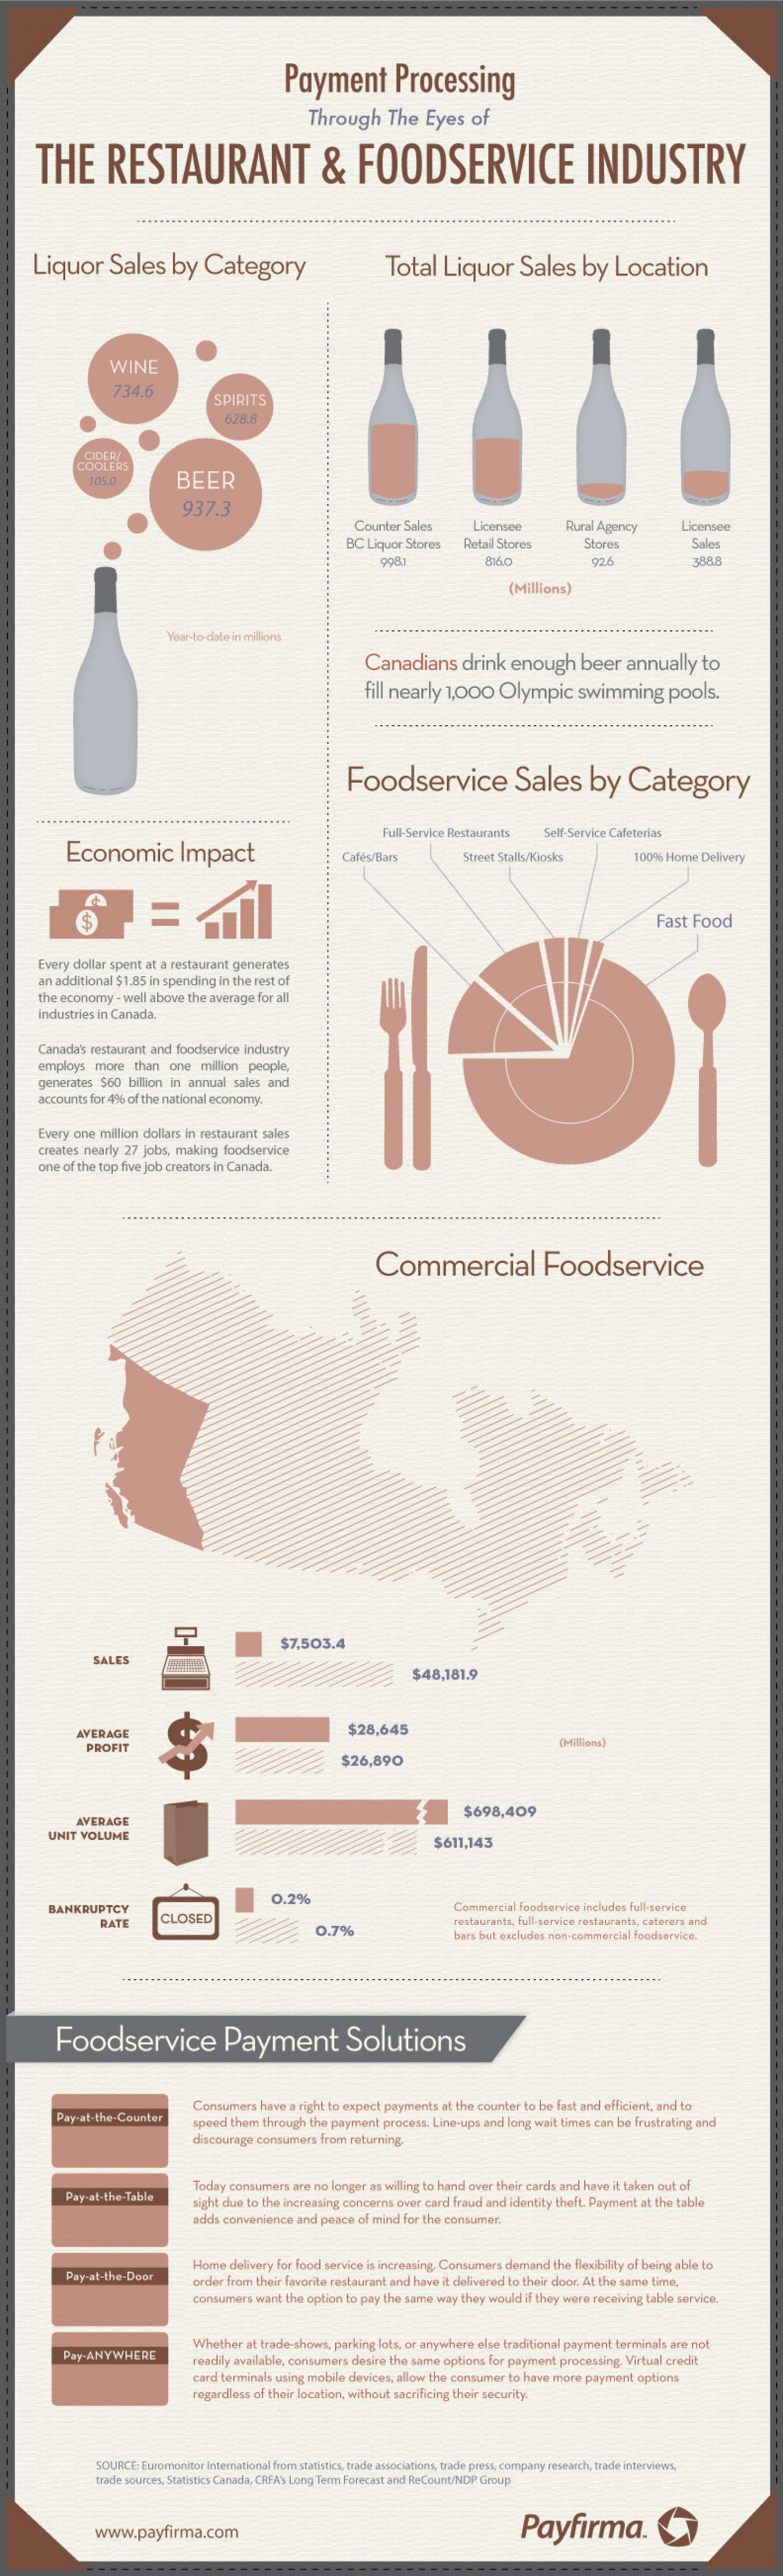 Payment Processing Through The Eyes Of The Restaurant & Foodservice Industry Infographic